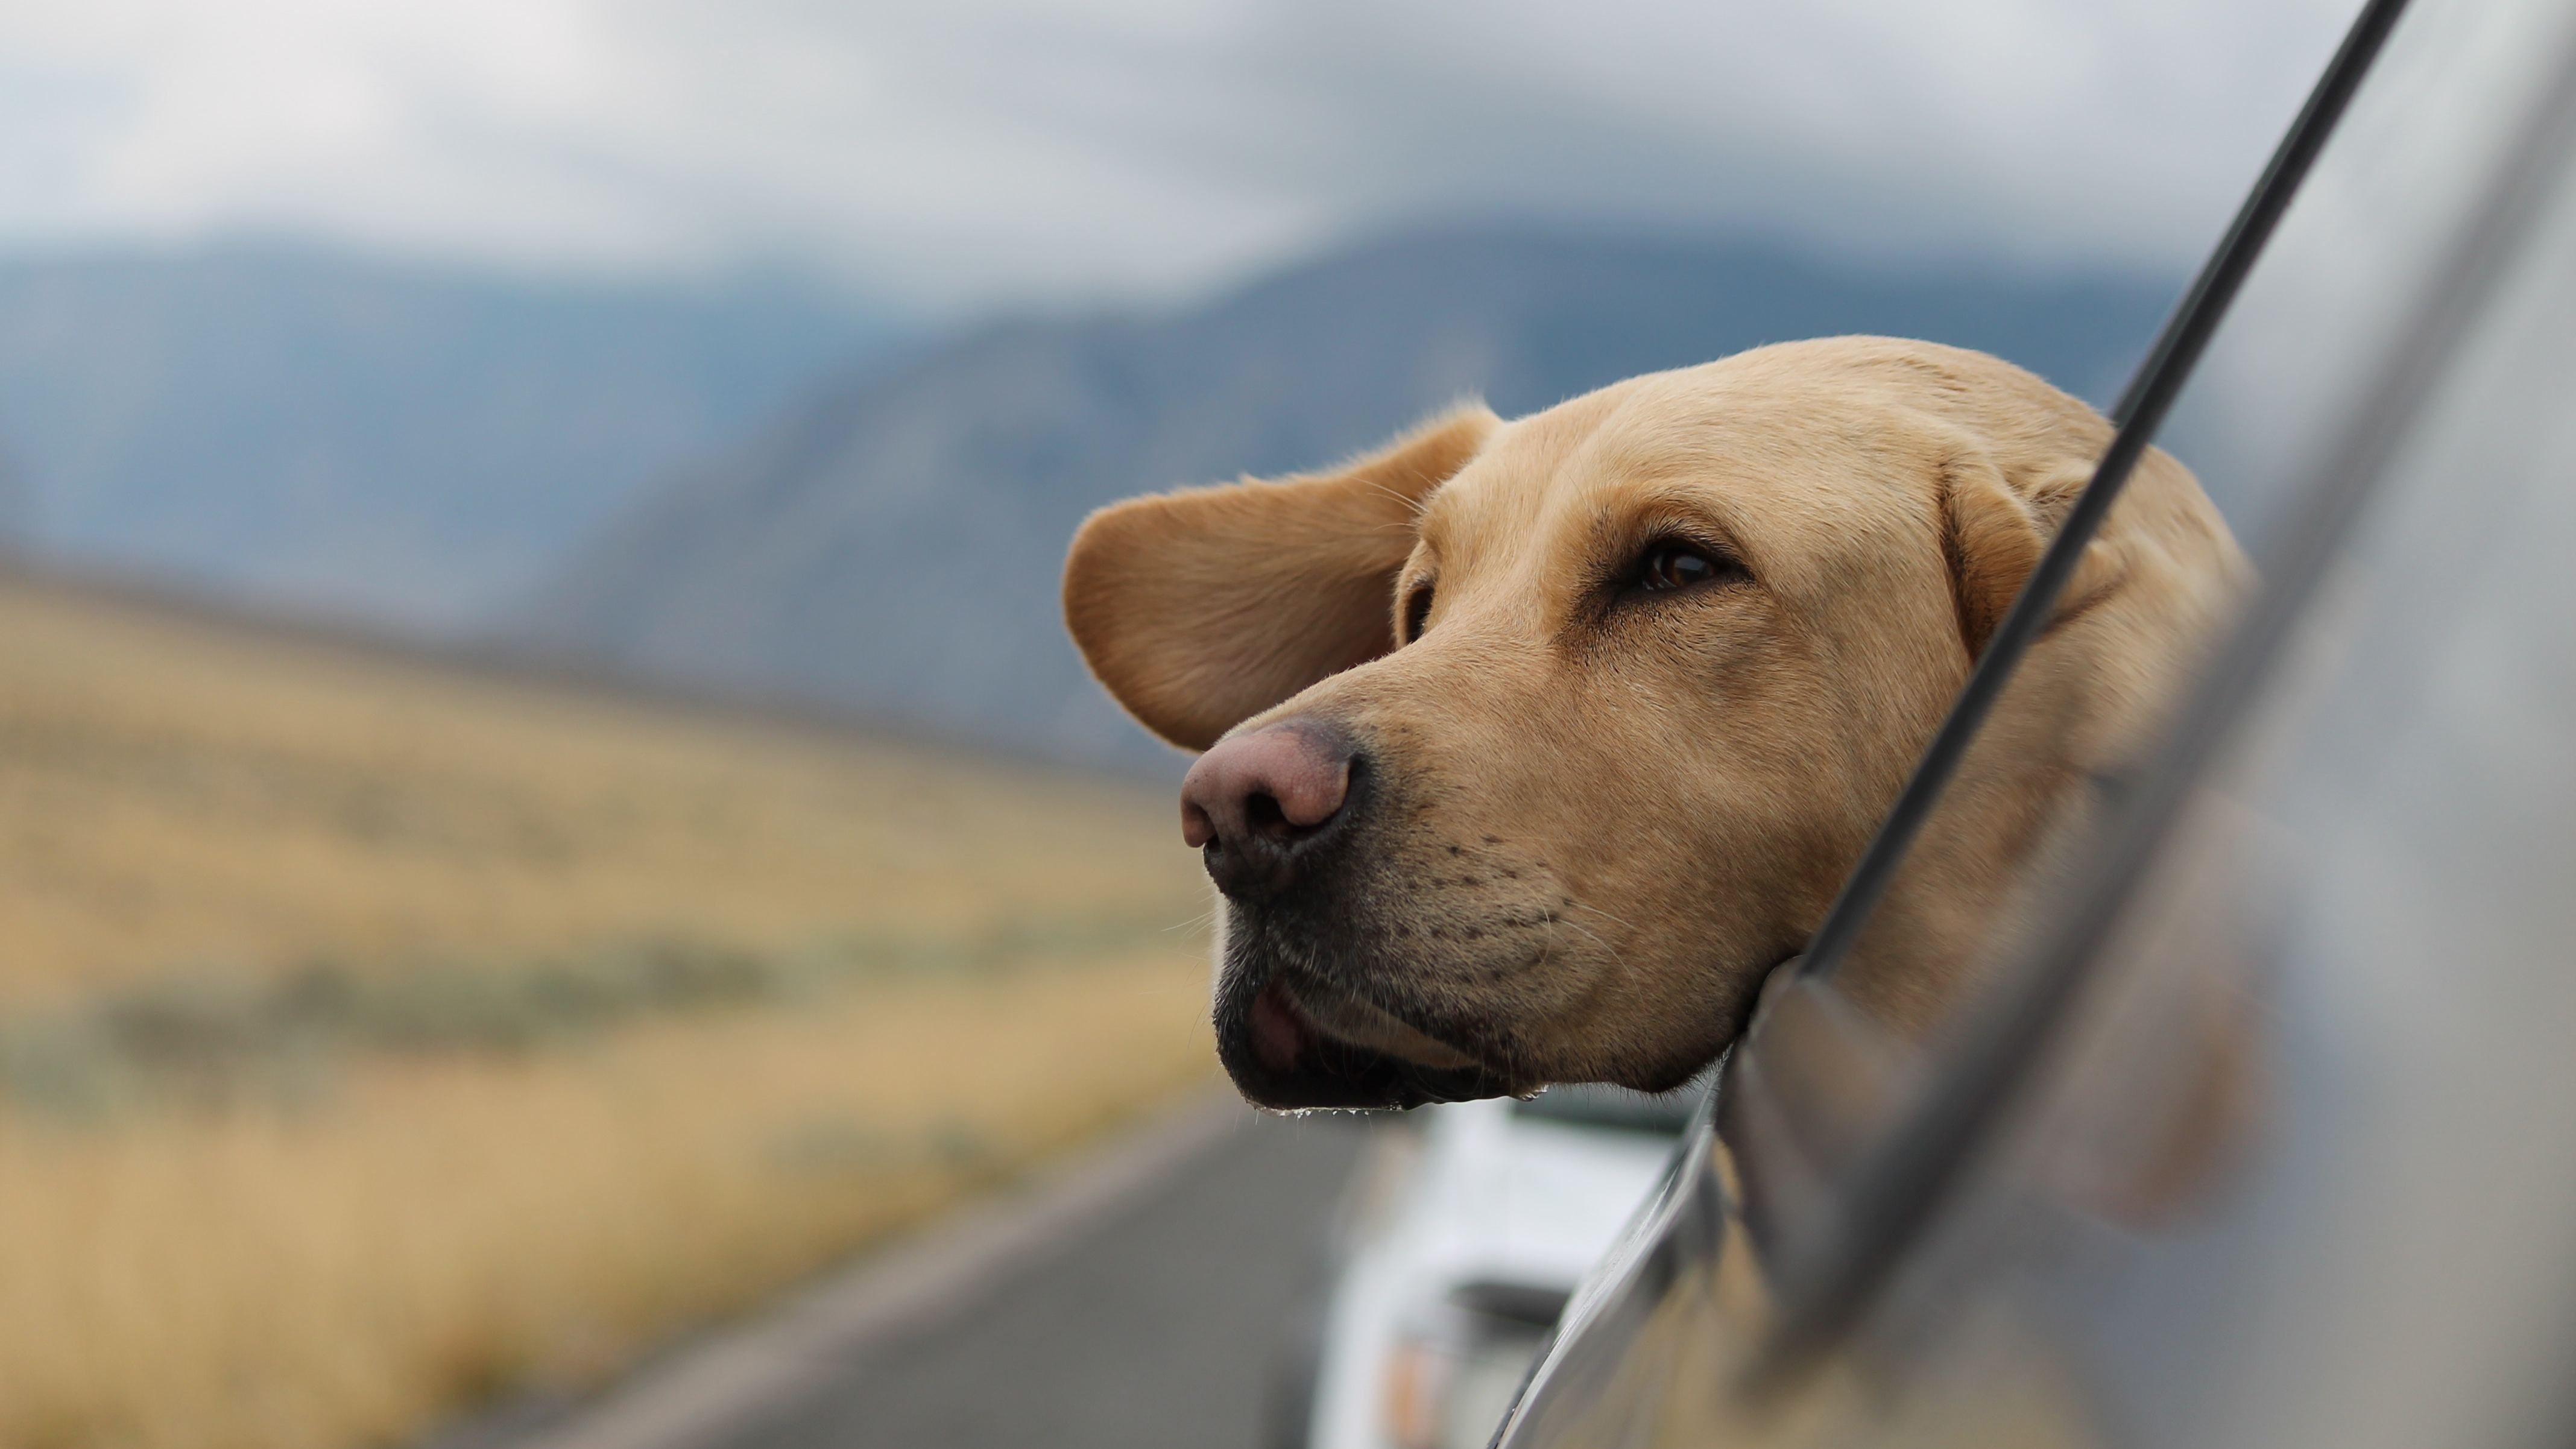 How To Dog-Proof Your Car